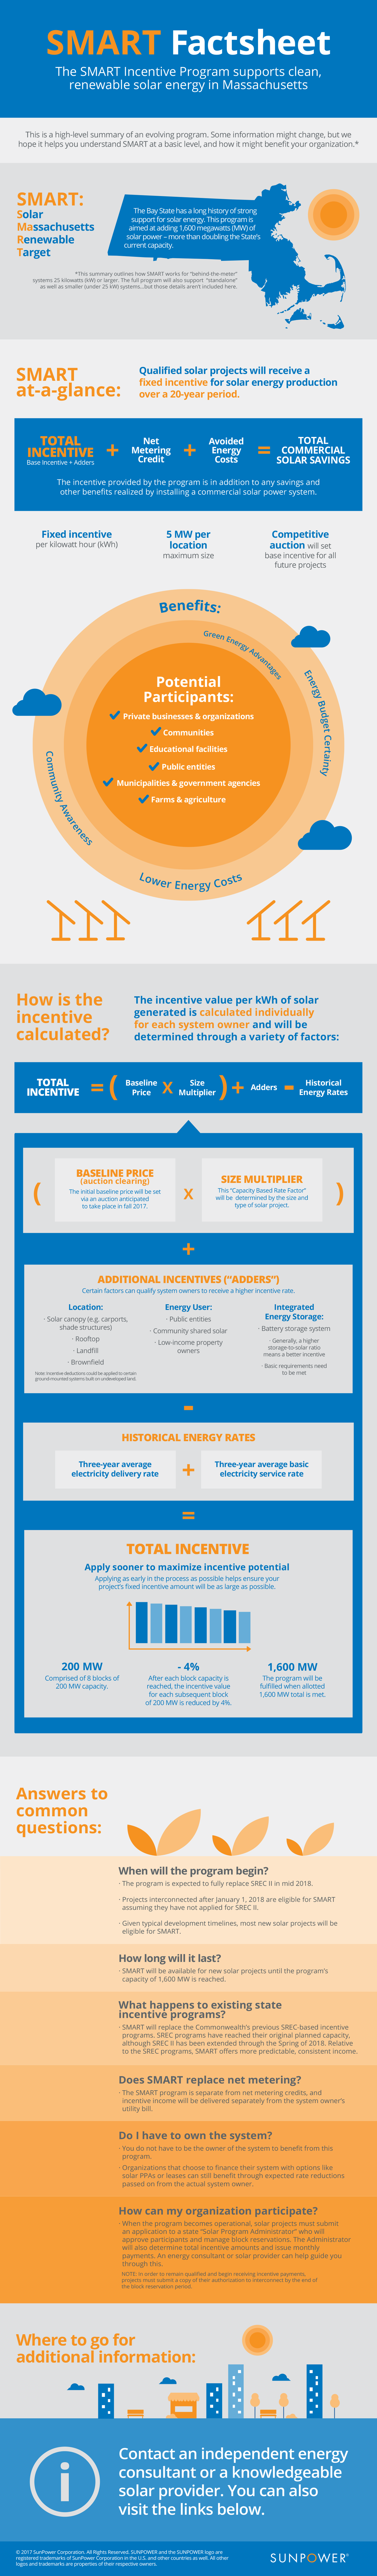 Overview of the SMART solar power incentive program